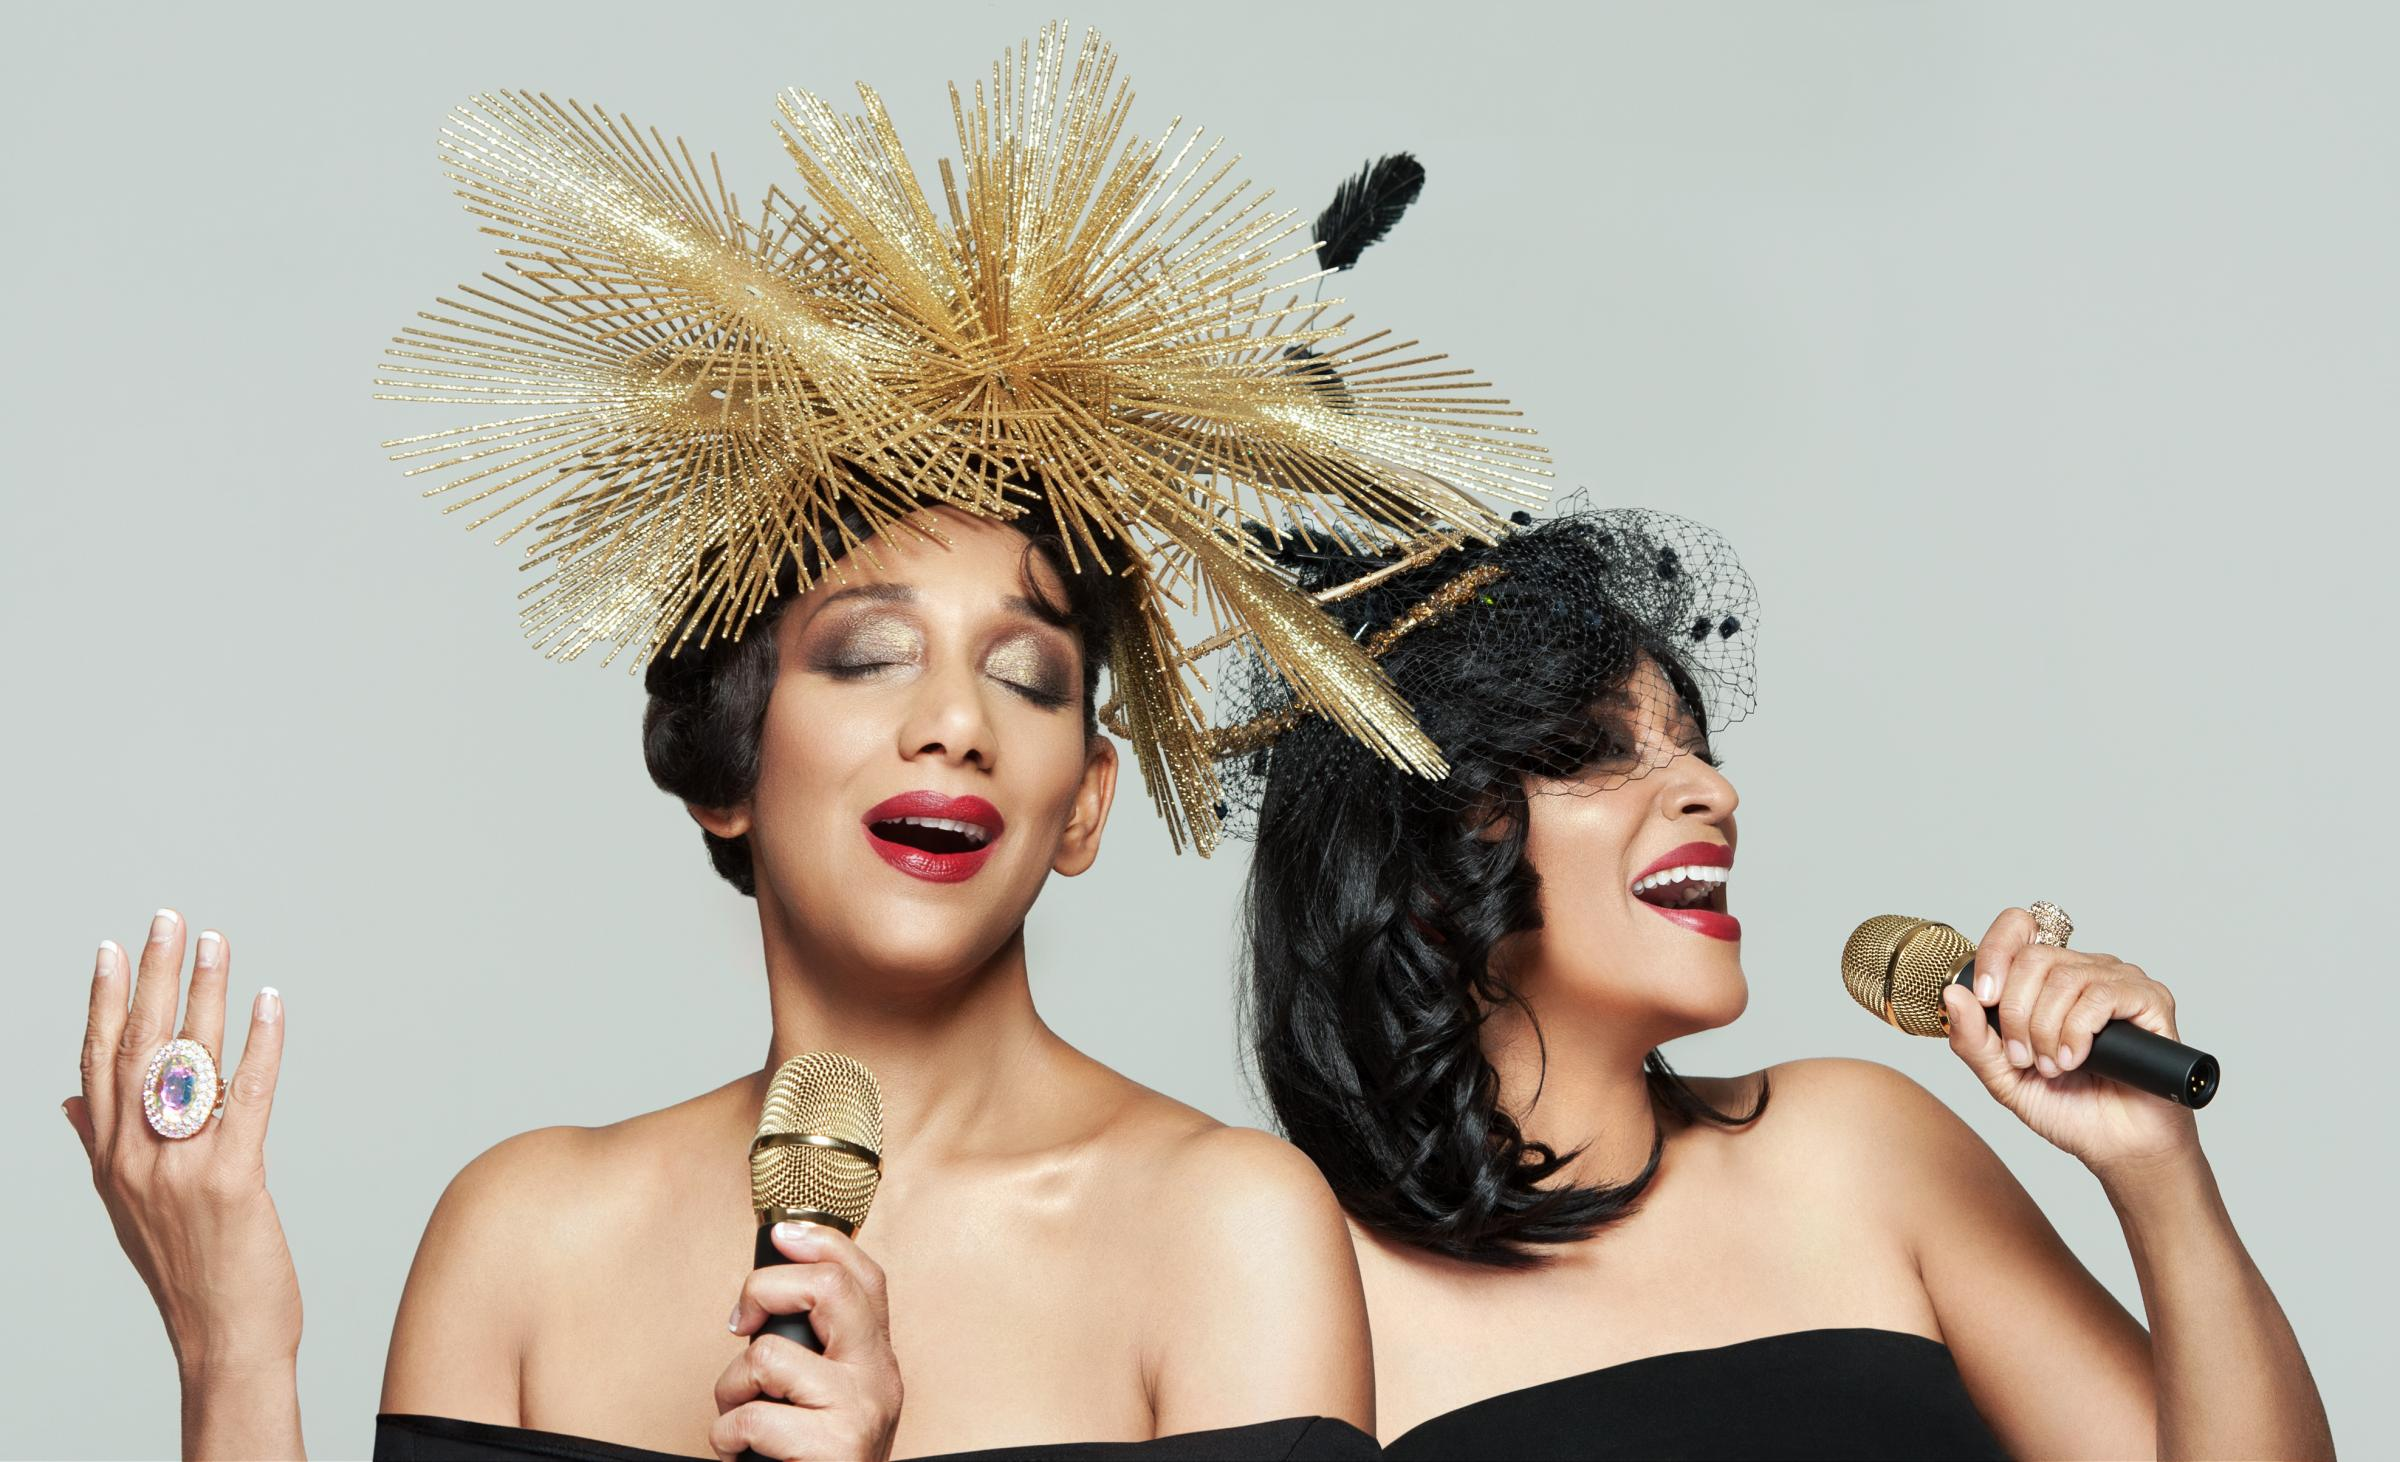 Sister Sledge are set to headline the event on the Saturday